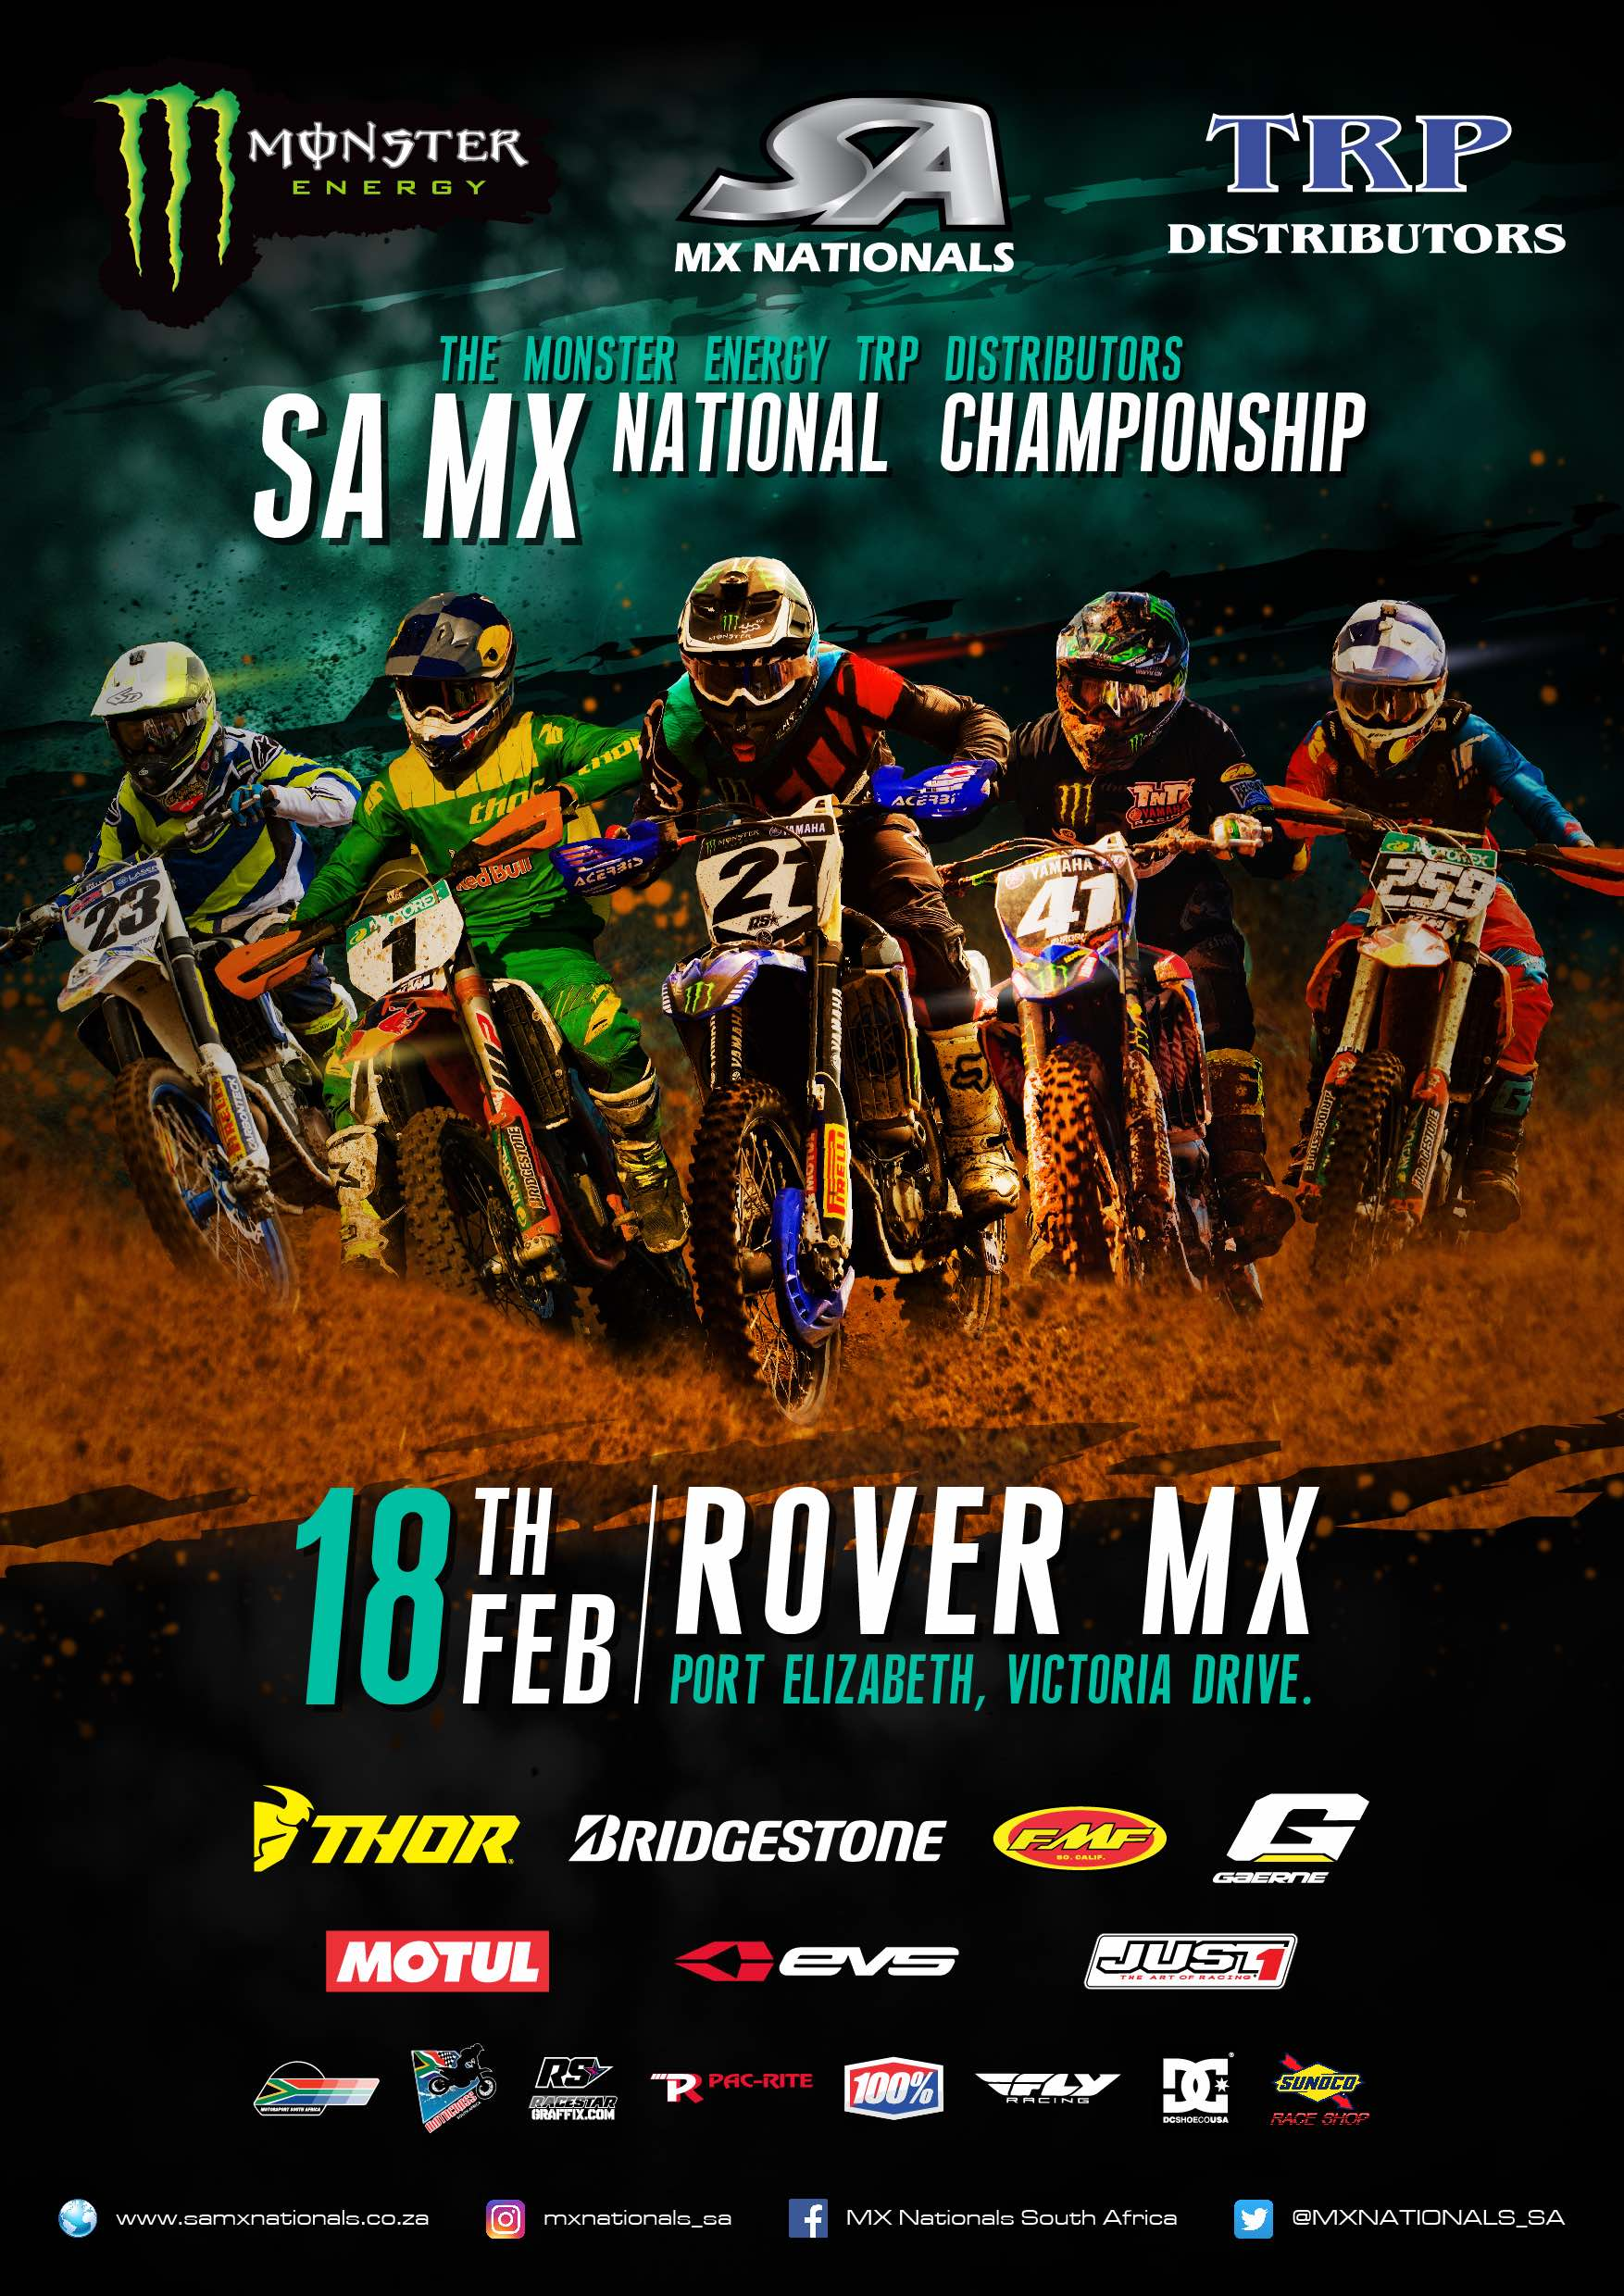 Details for Round 1 of the 2017 Monster Energy TRP Distributors SA National Motocross Championship